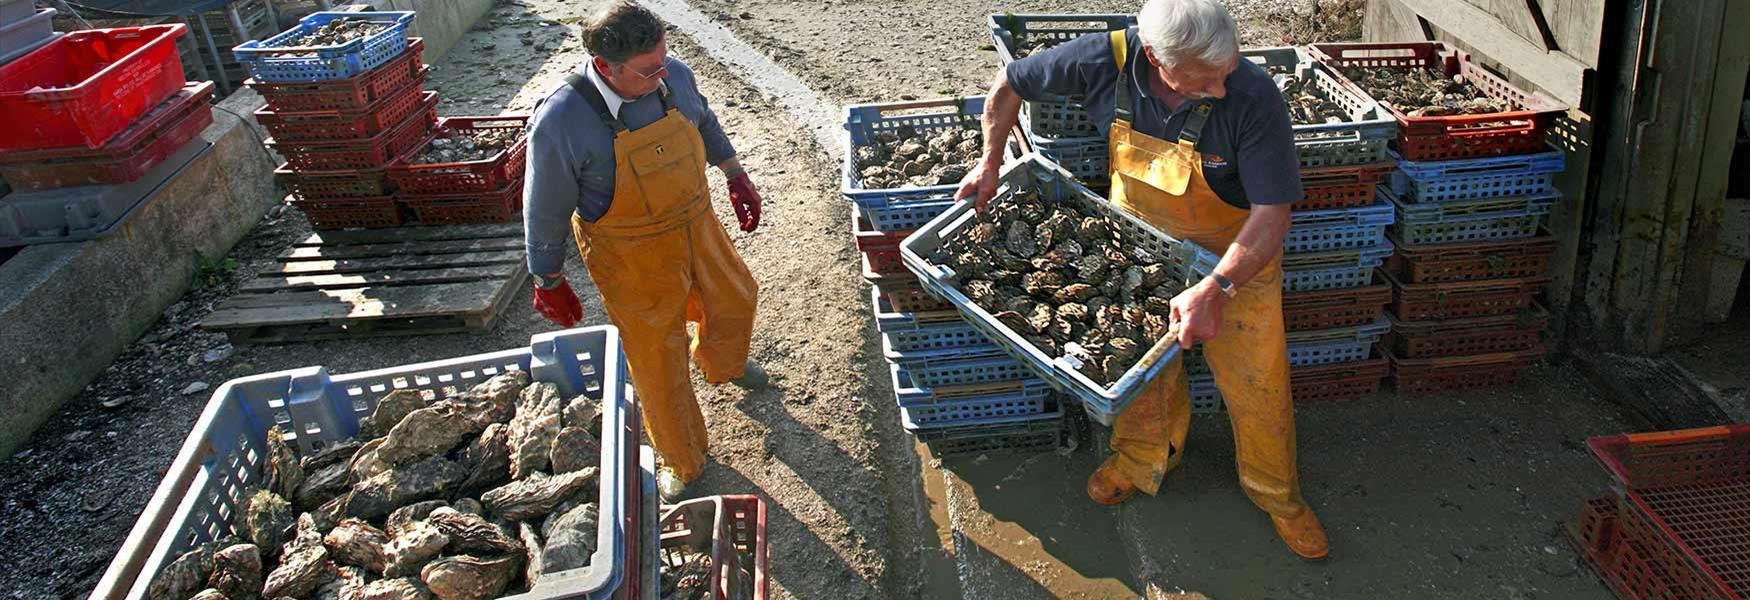 A Fresh Catch of Oysters on Mersea Island